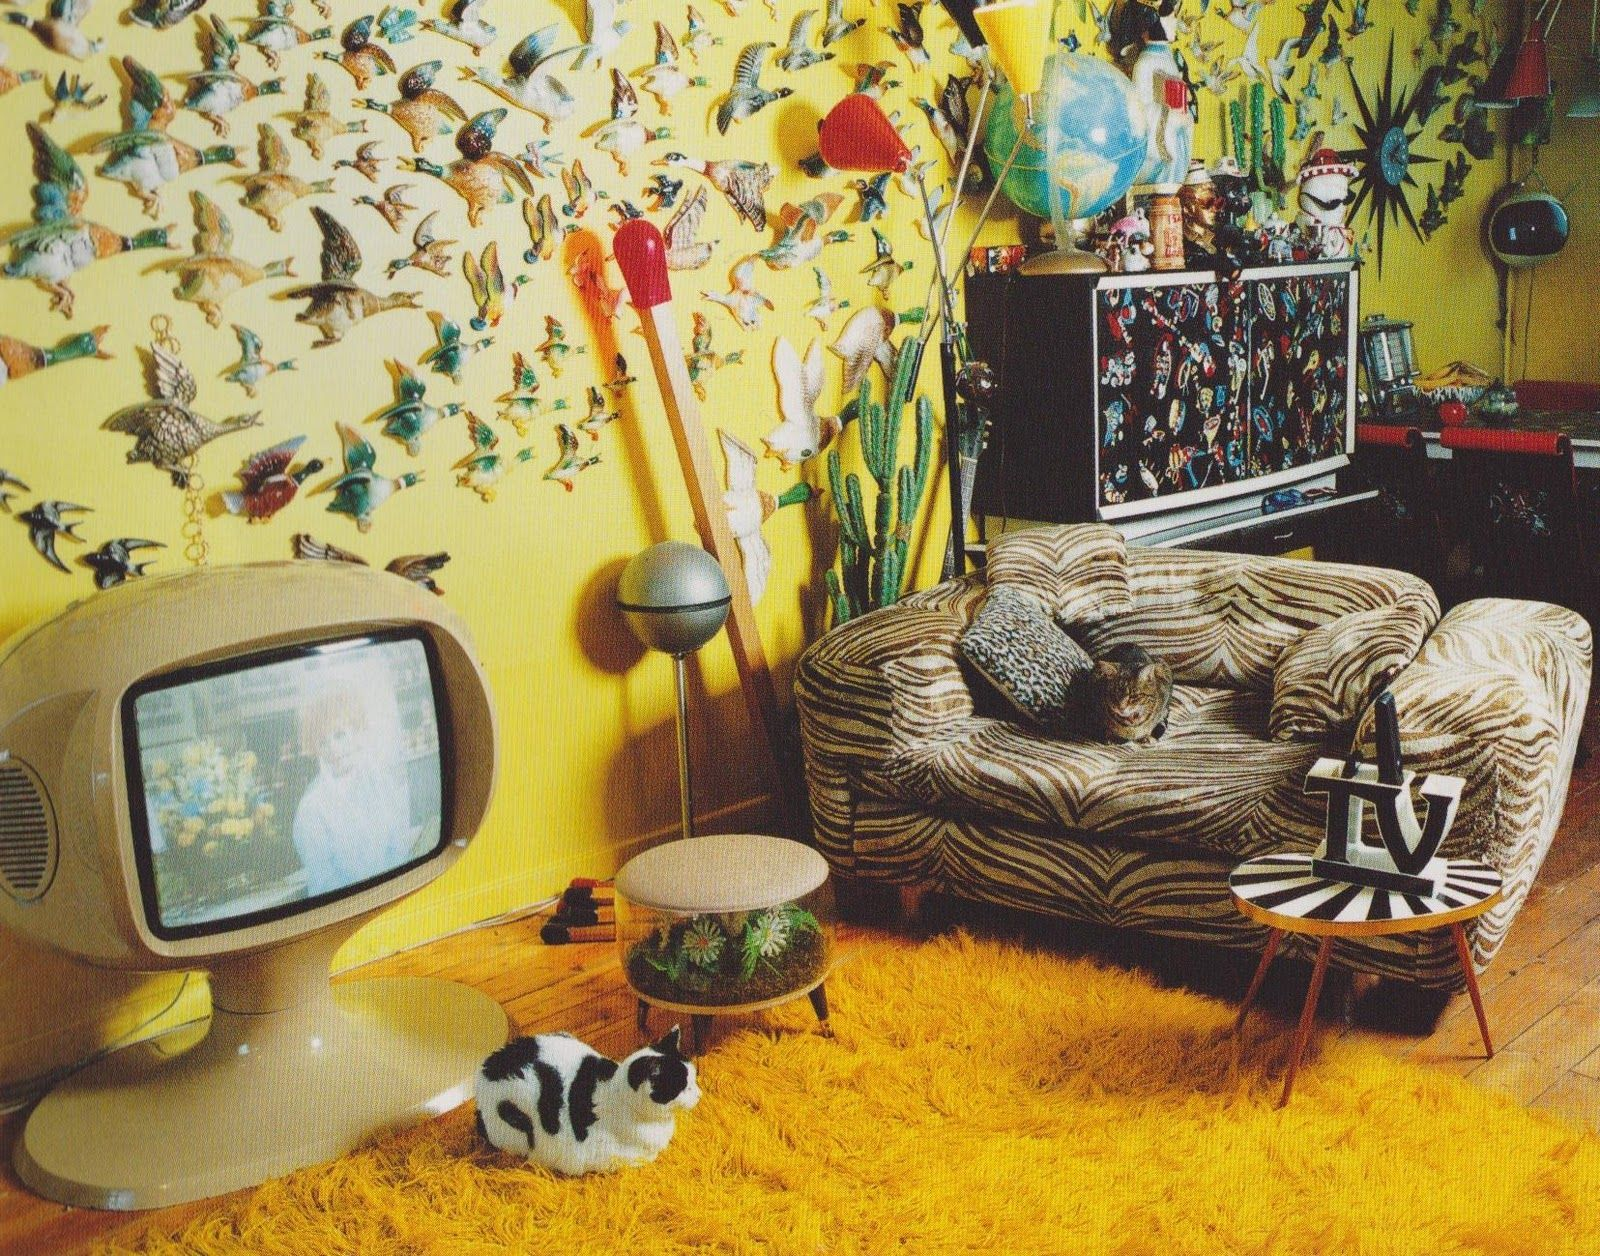 Captivating Images Of Vintage Kitsch Interiors